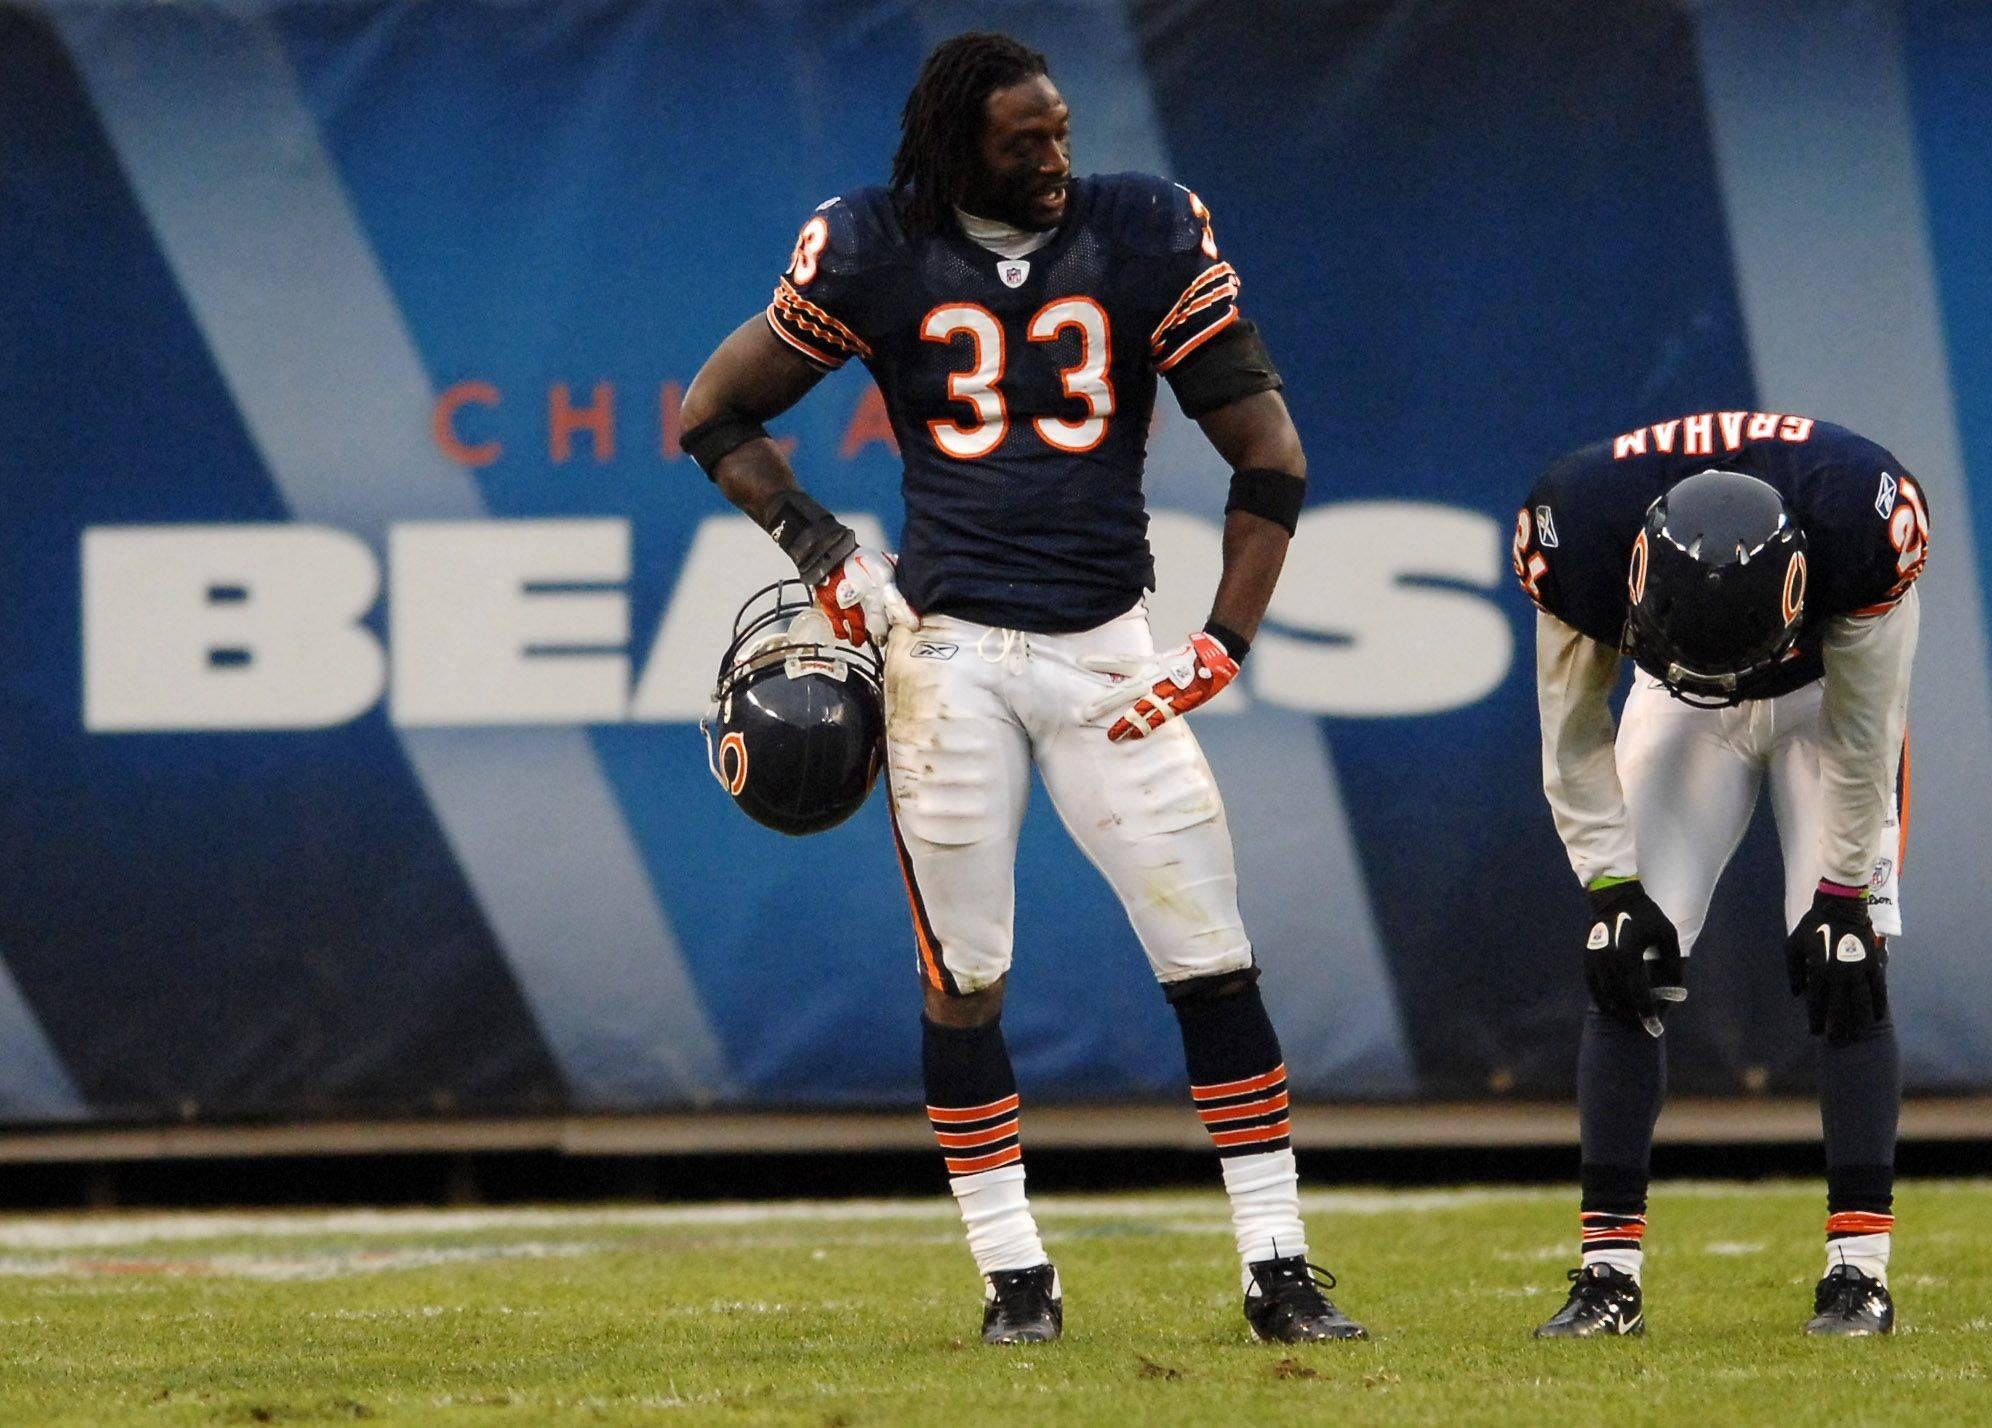 Bears suffer 10-3 loss to Chiefs